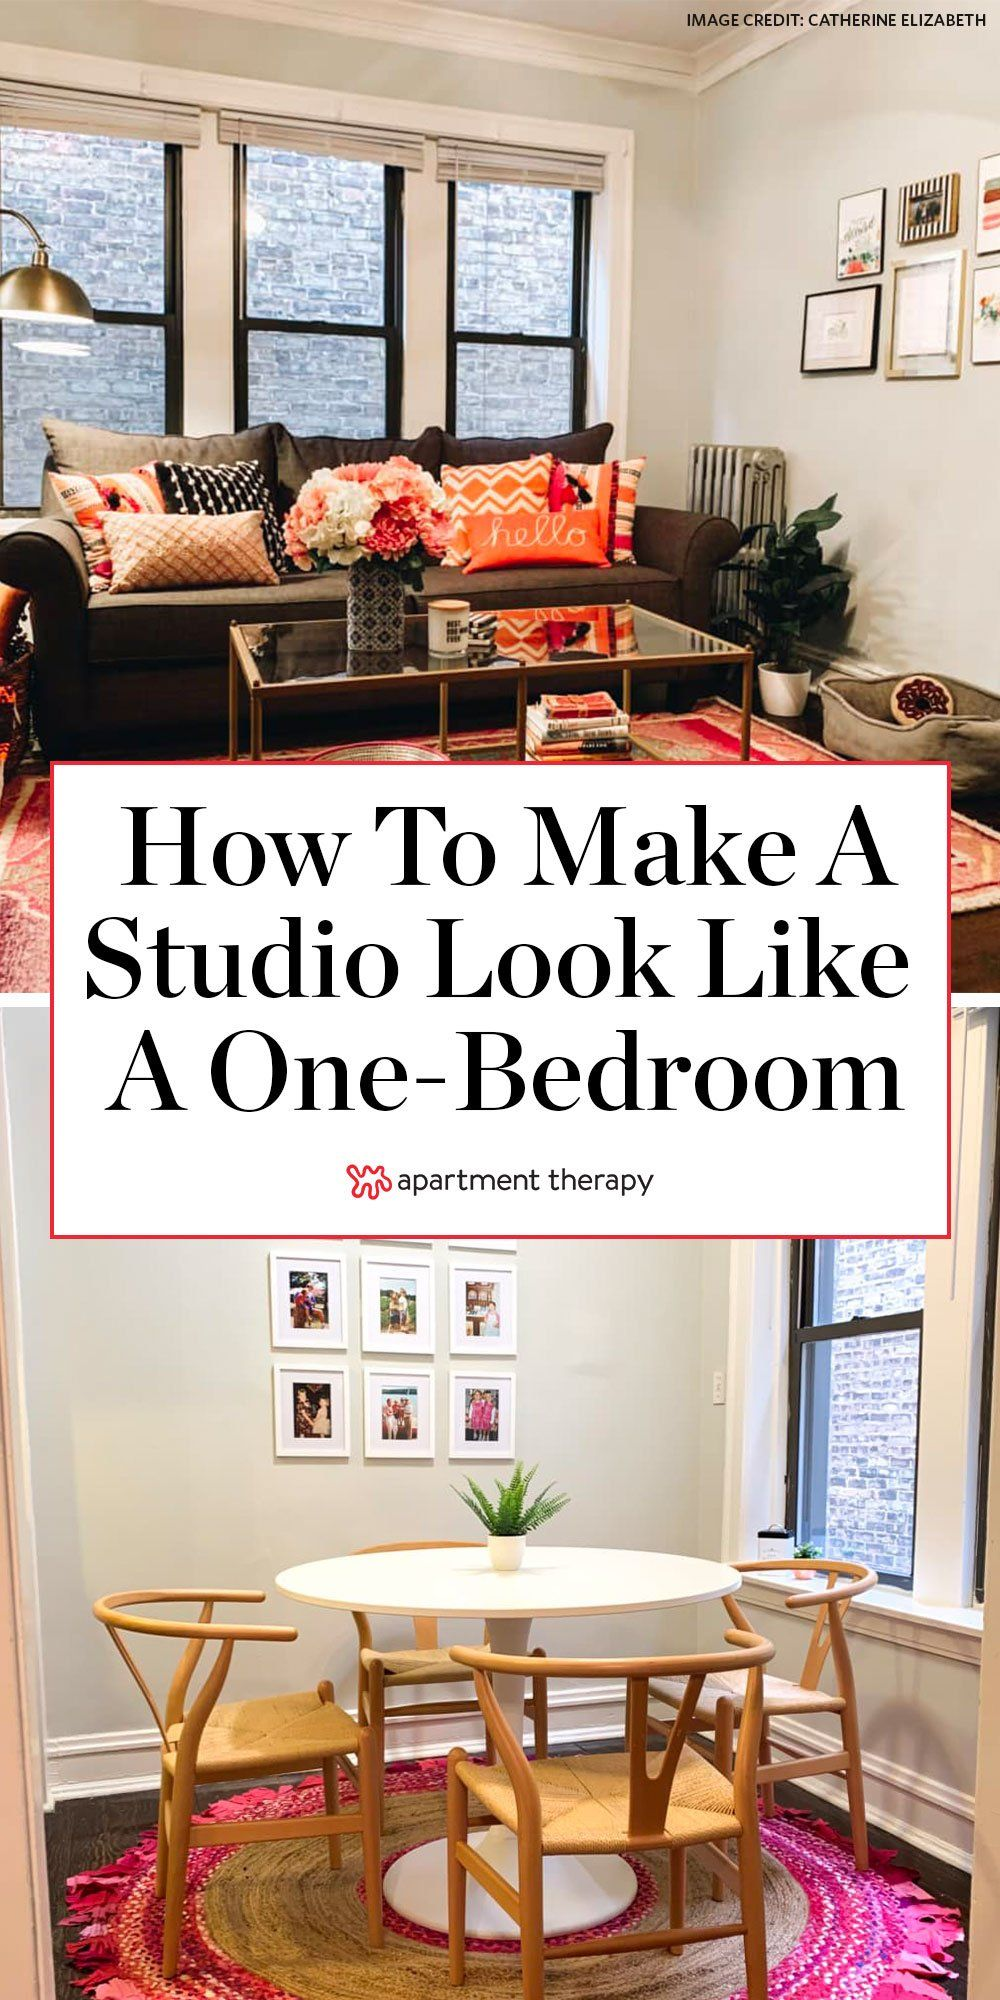 This 500 Square Foot Studio Is Now A One Bedroom Thanks To A Clever Bed Placement In 2020 Studio Apartment Living Apartment Living Studio Apartment